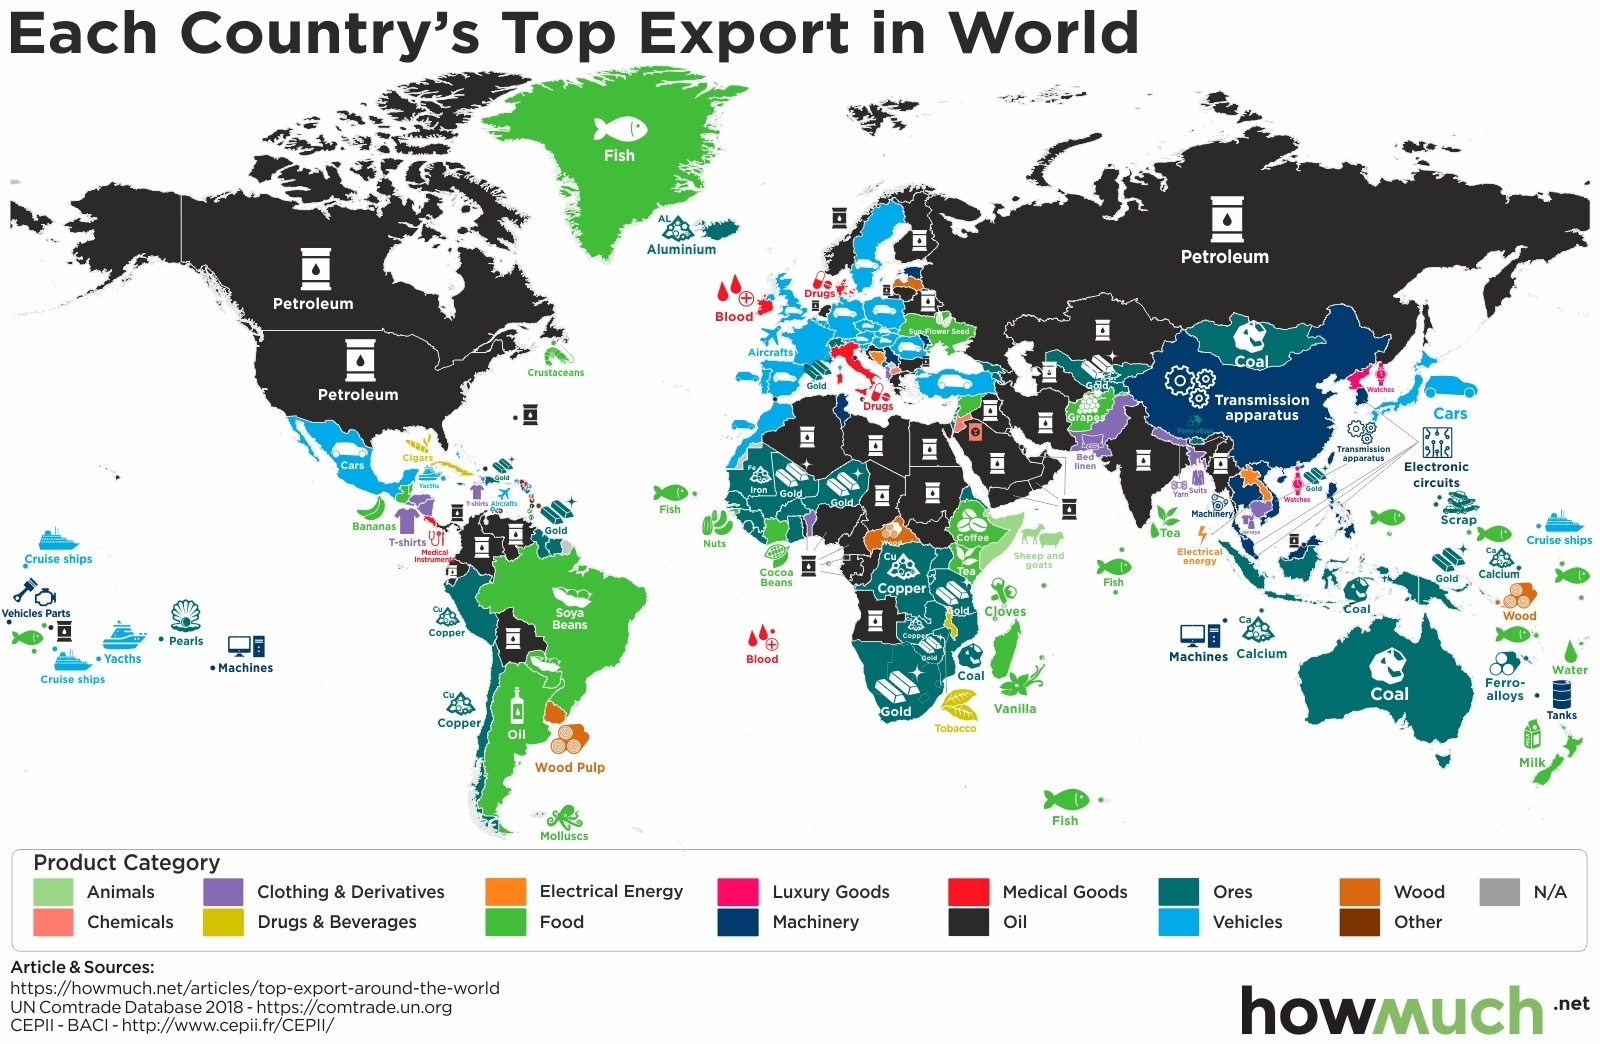 Top Export by country